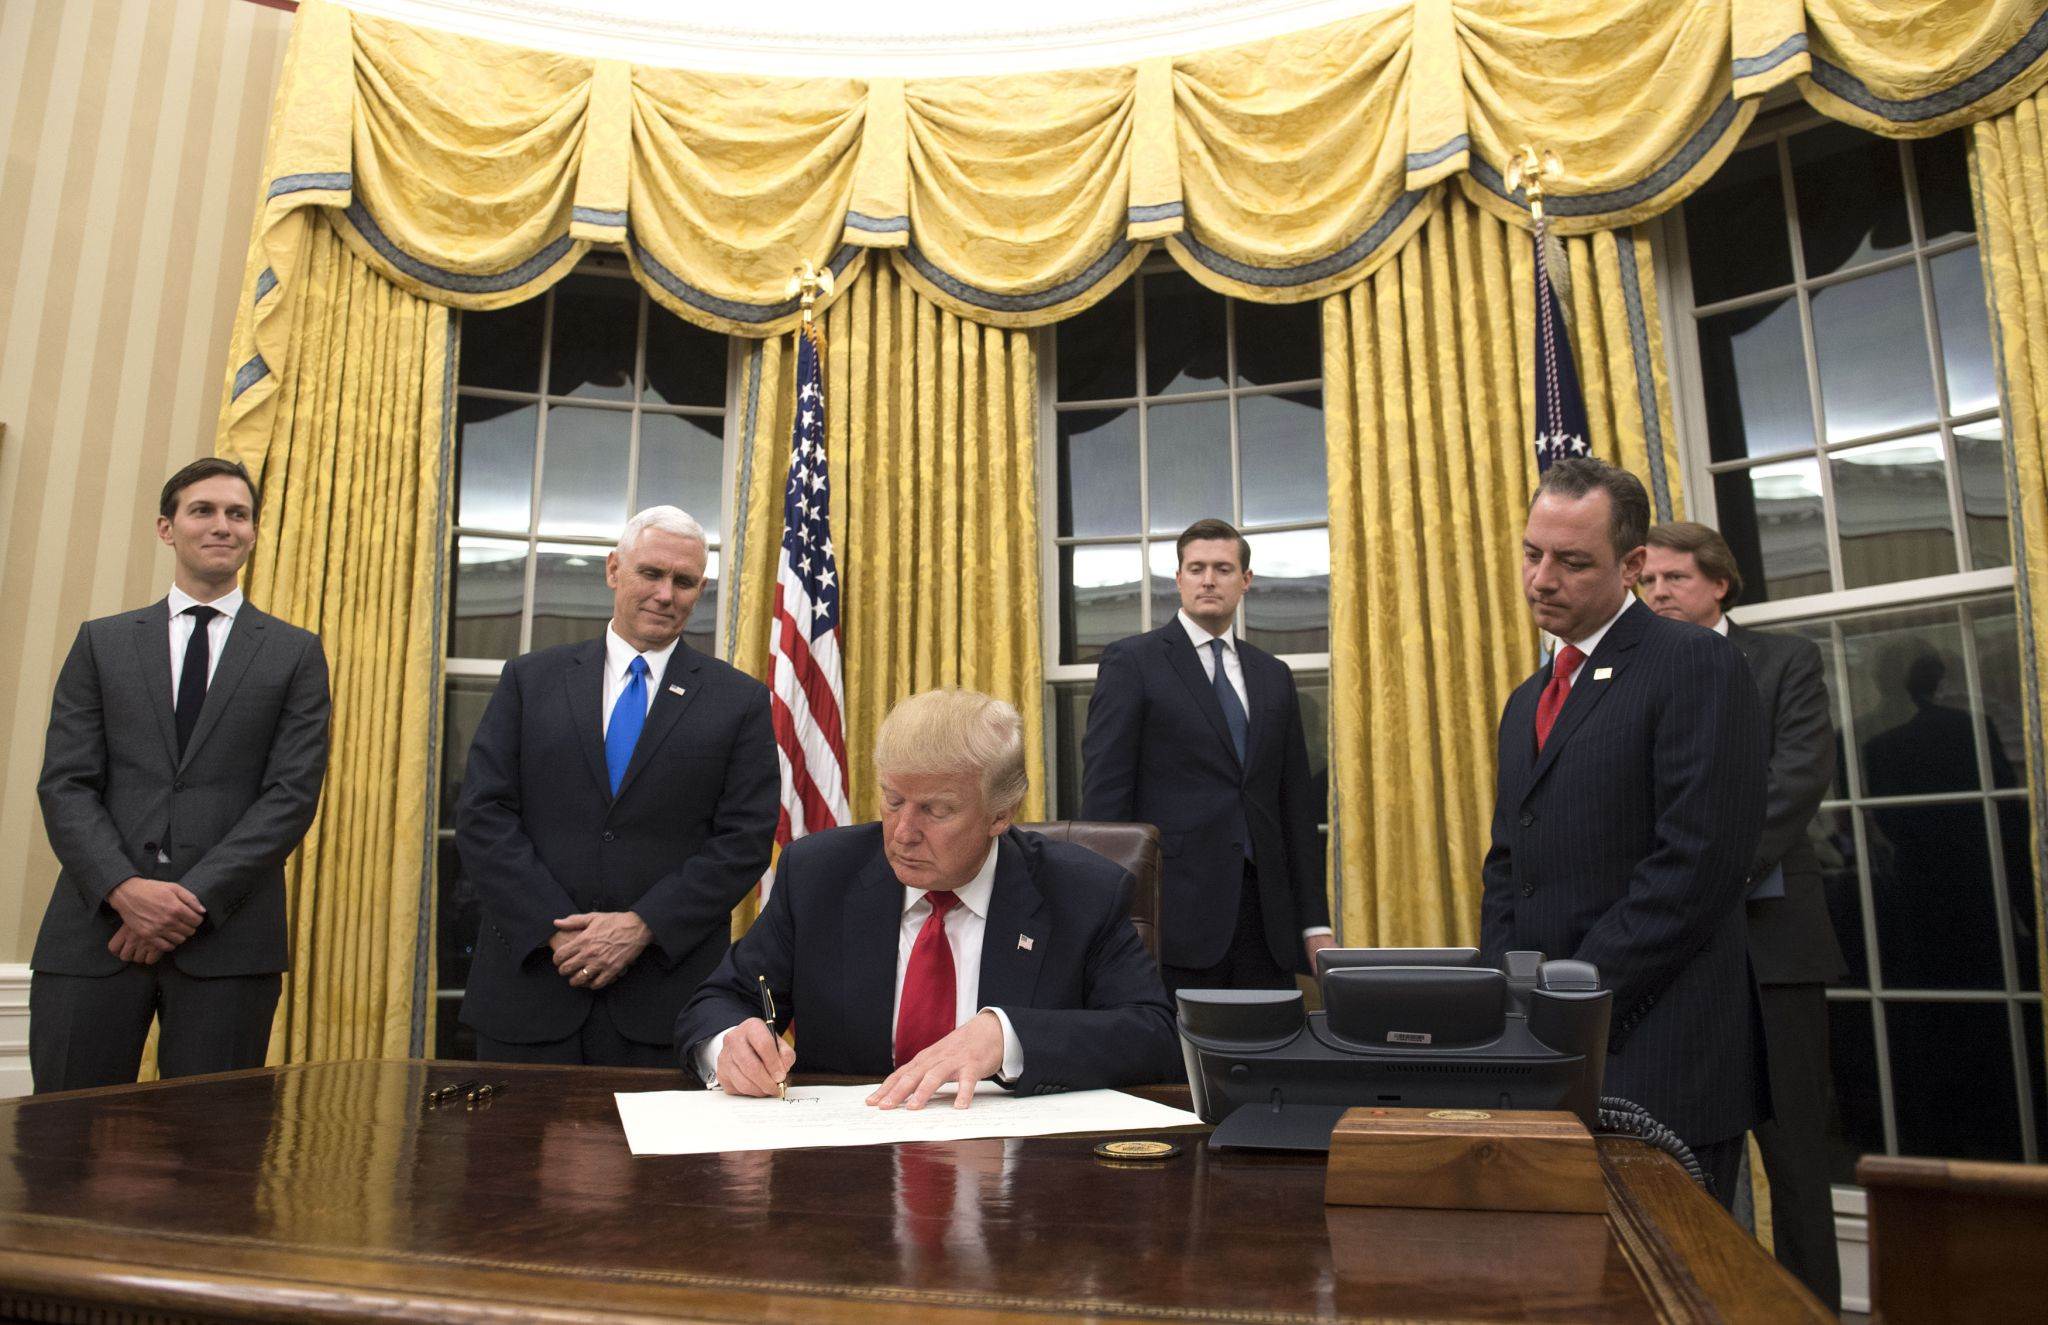 barak obama oval office golds. Here\u0027s How President Donald Trump Has Already Redecorated The Oval Office - Houston Chronicle Barak Obama Golds A